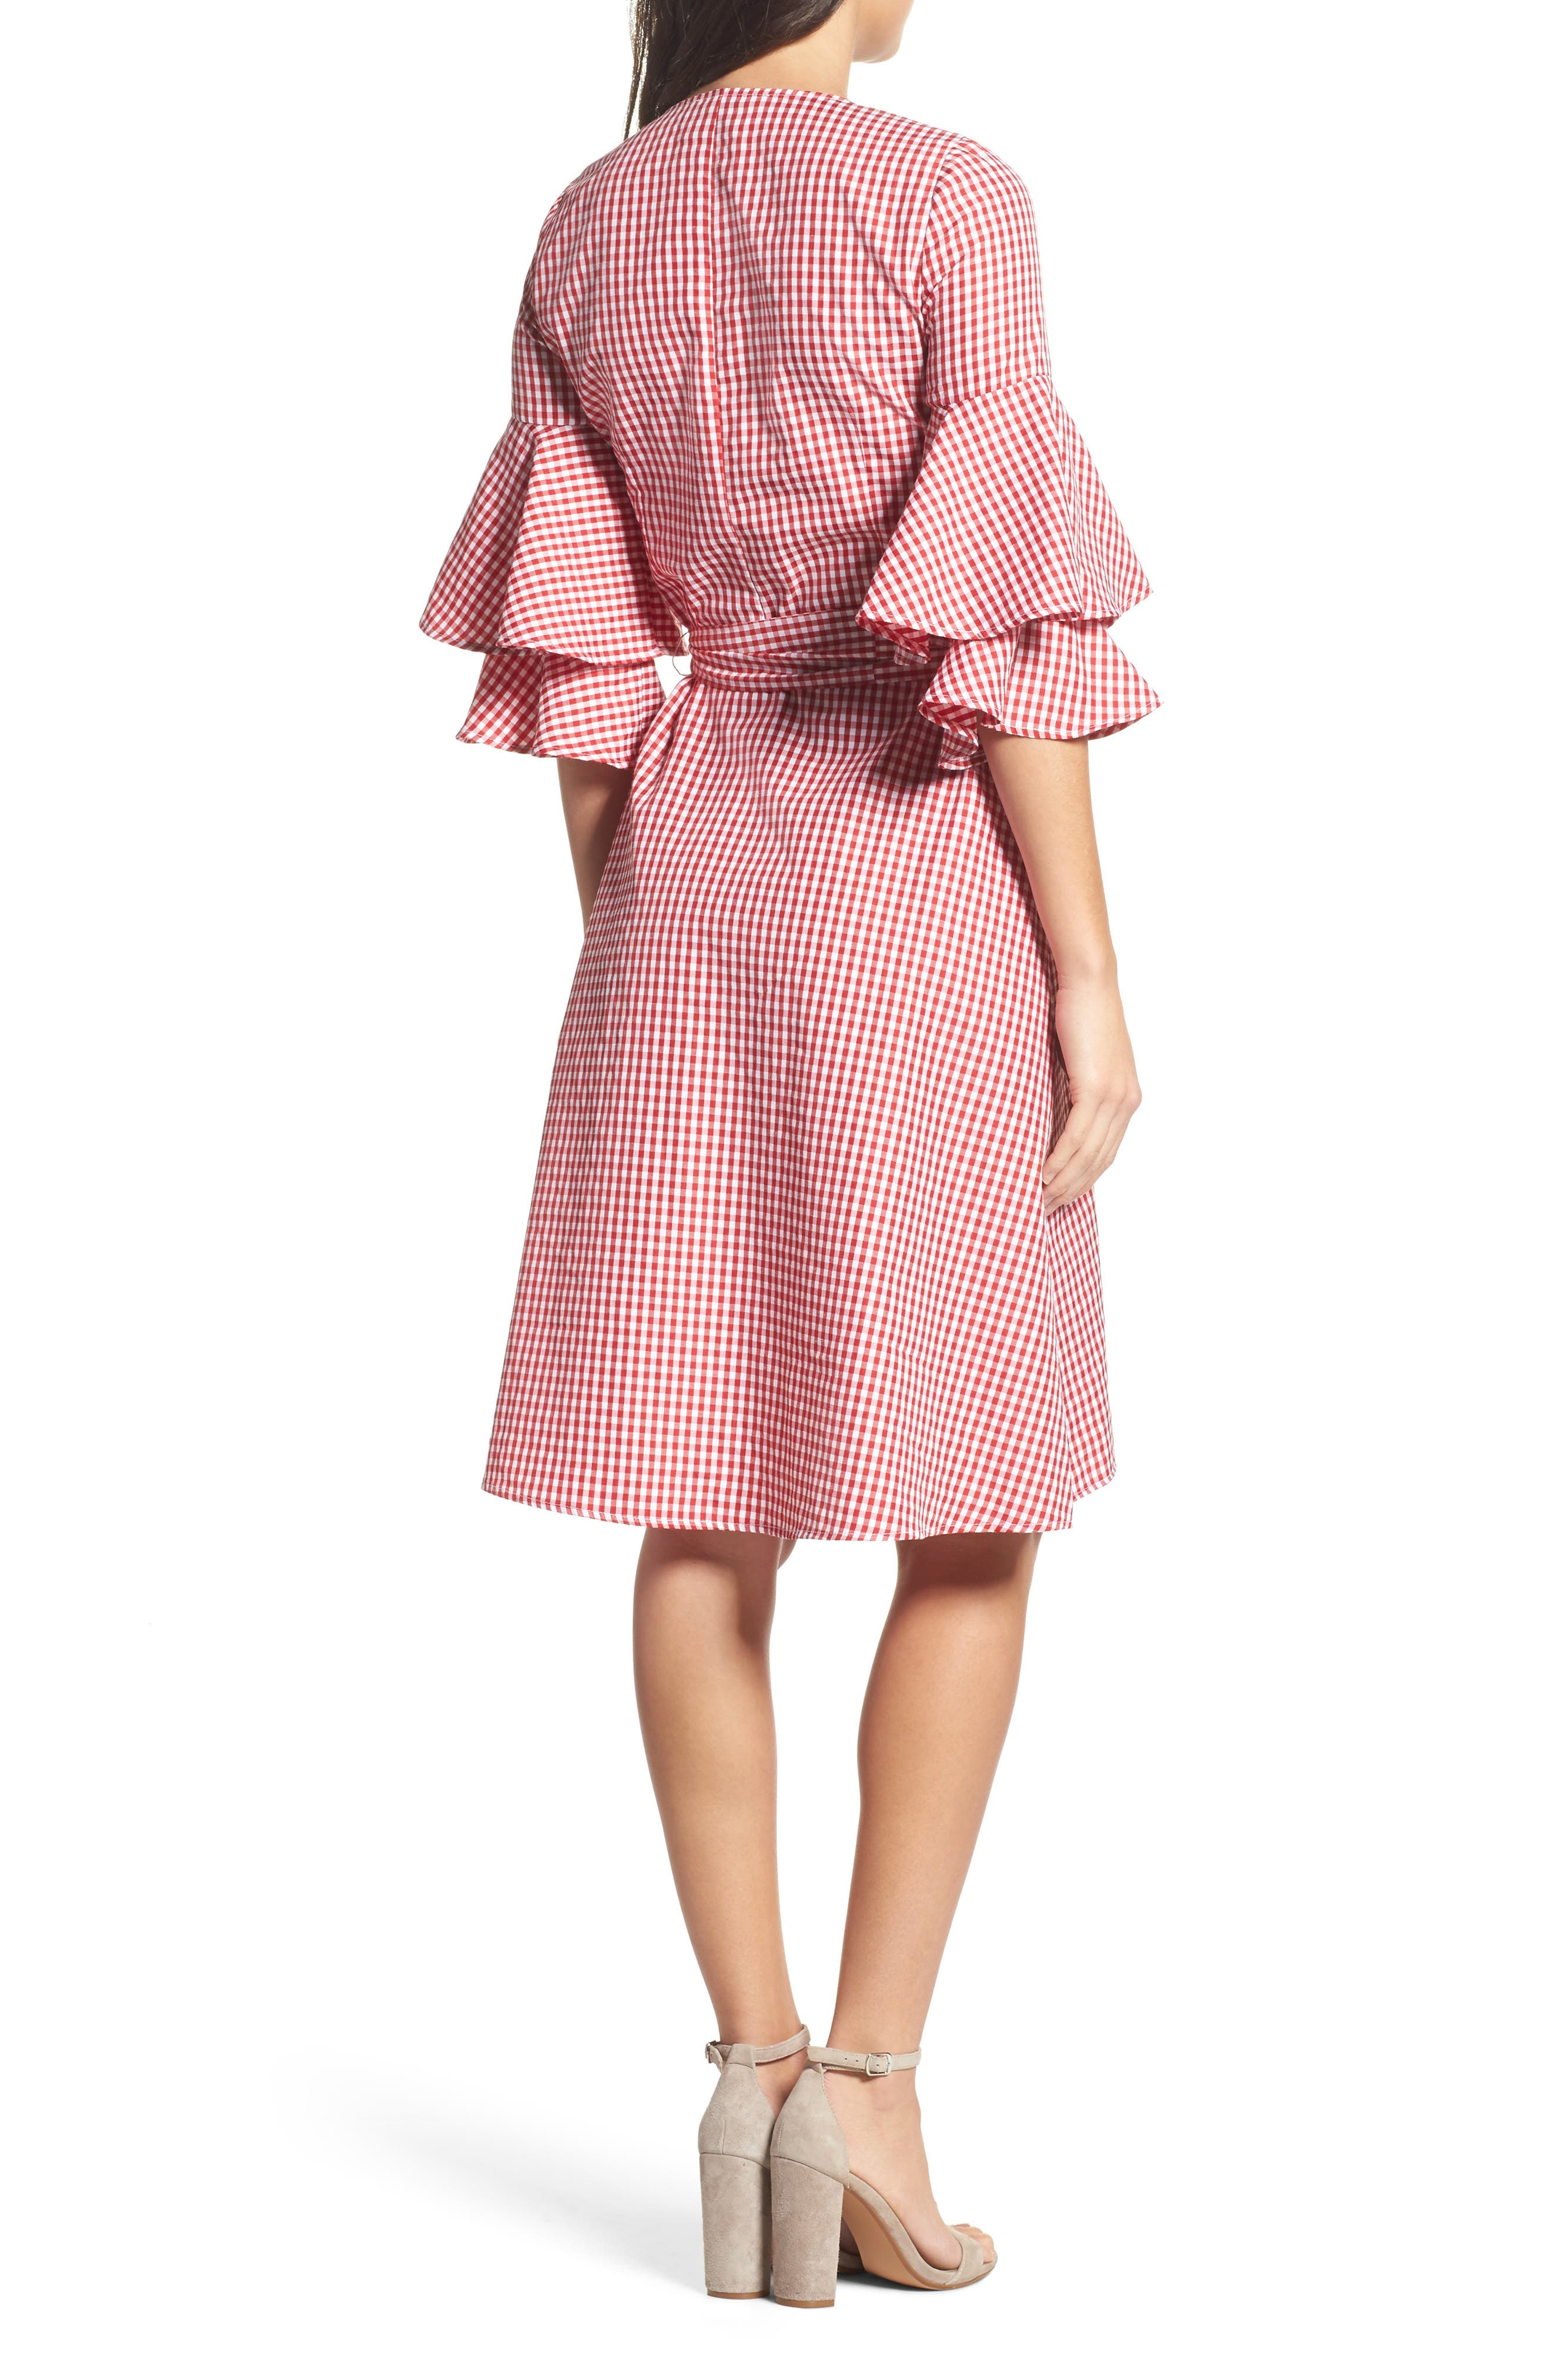 Ruffle Wrap Dress,                             Alternate thumbnail 3, color,                             Red/ White Gingham